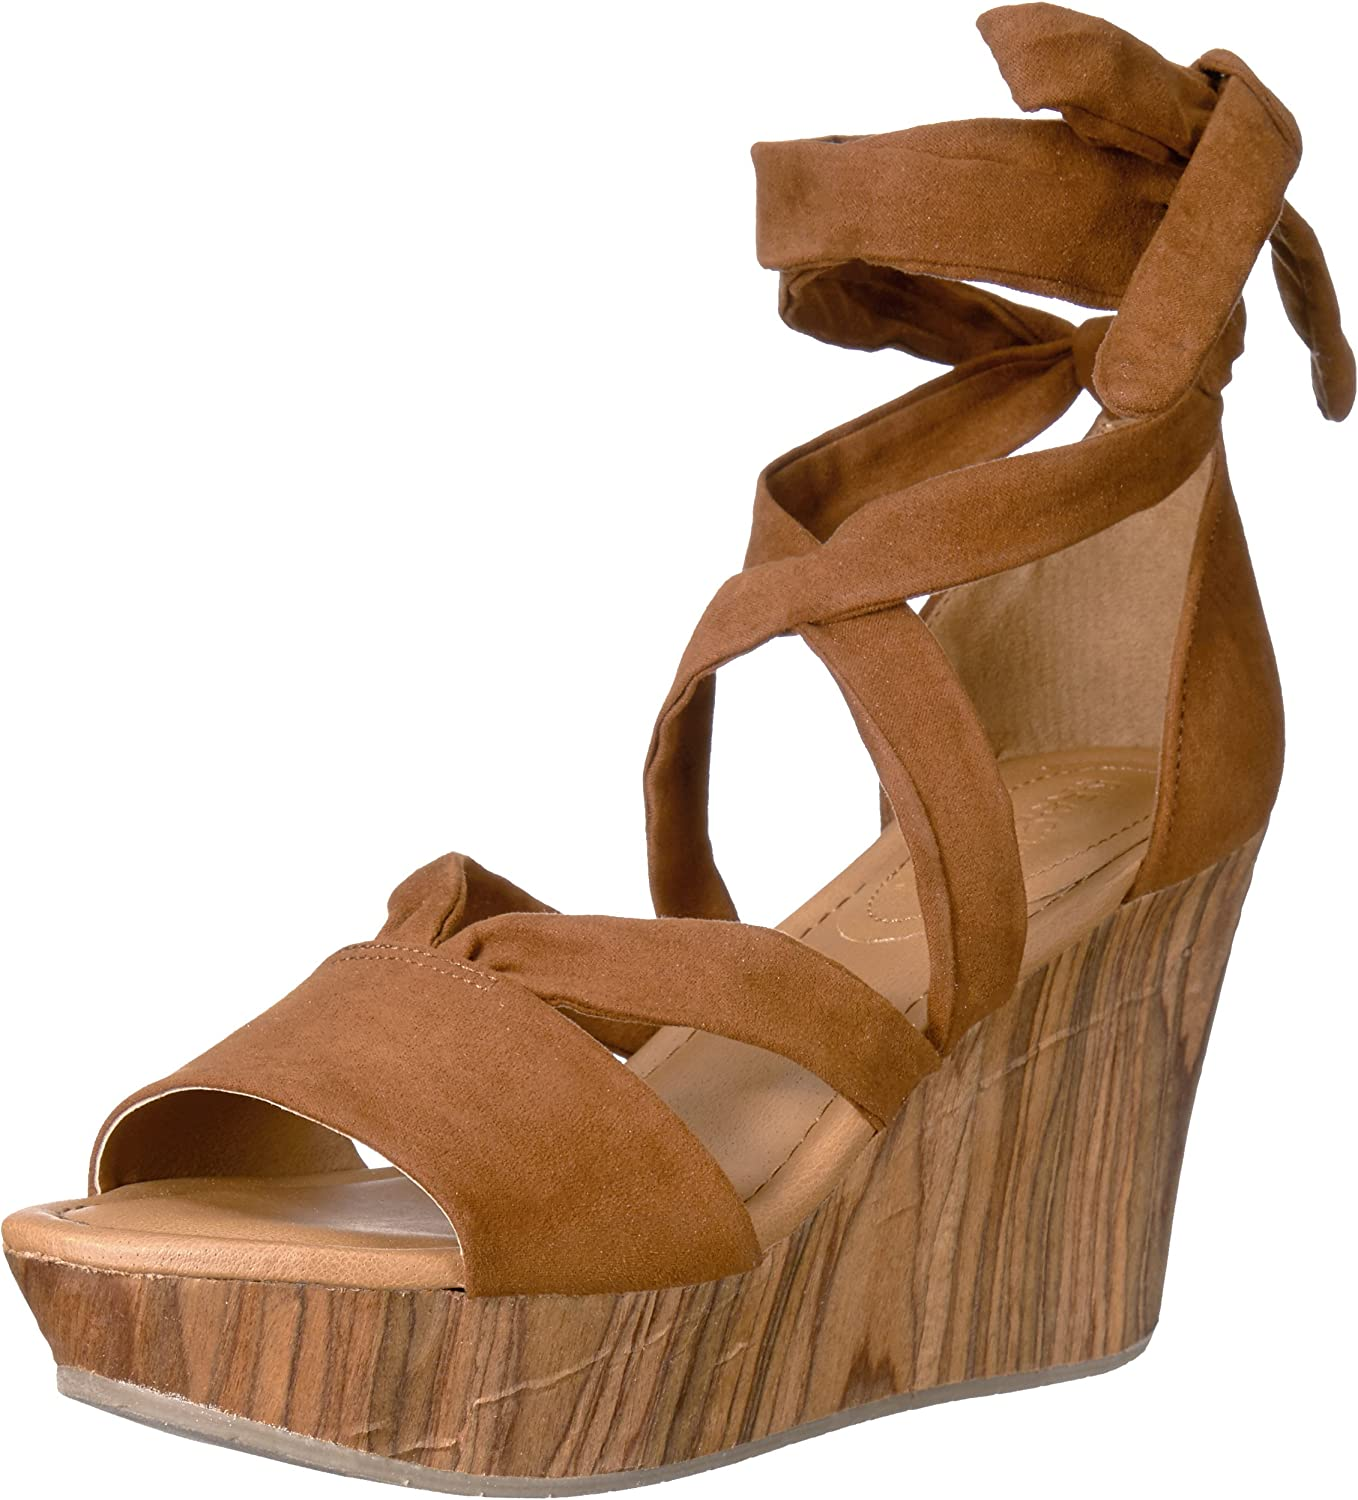 Kenneth Cole REACTION Womens Sole Rise Wedge Sandal